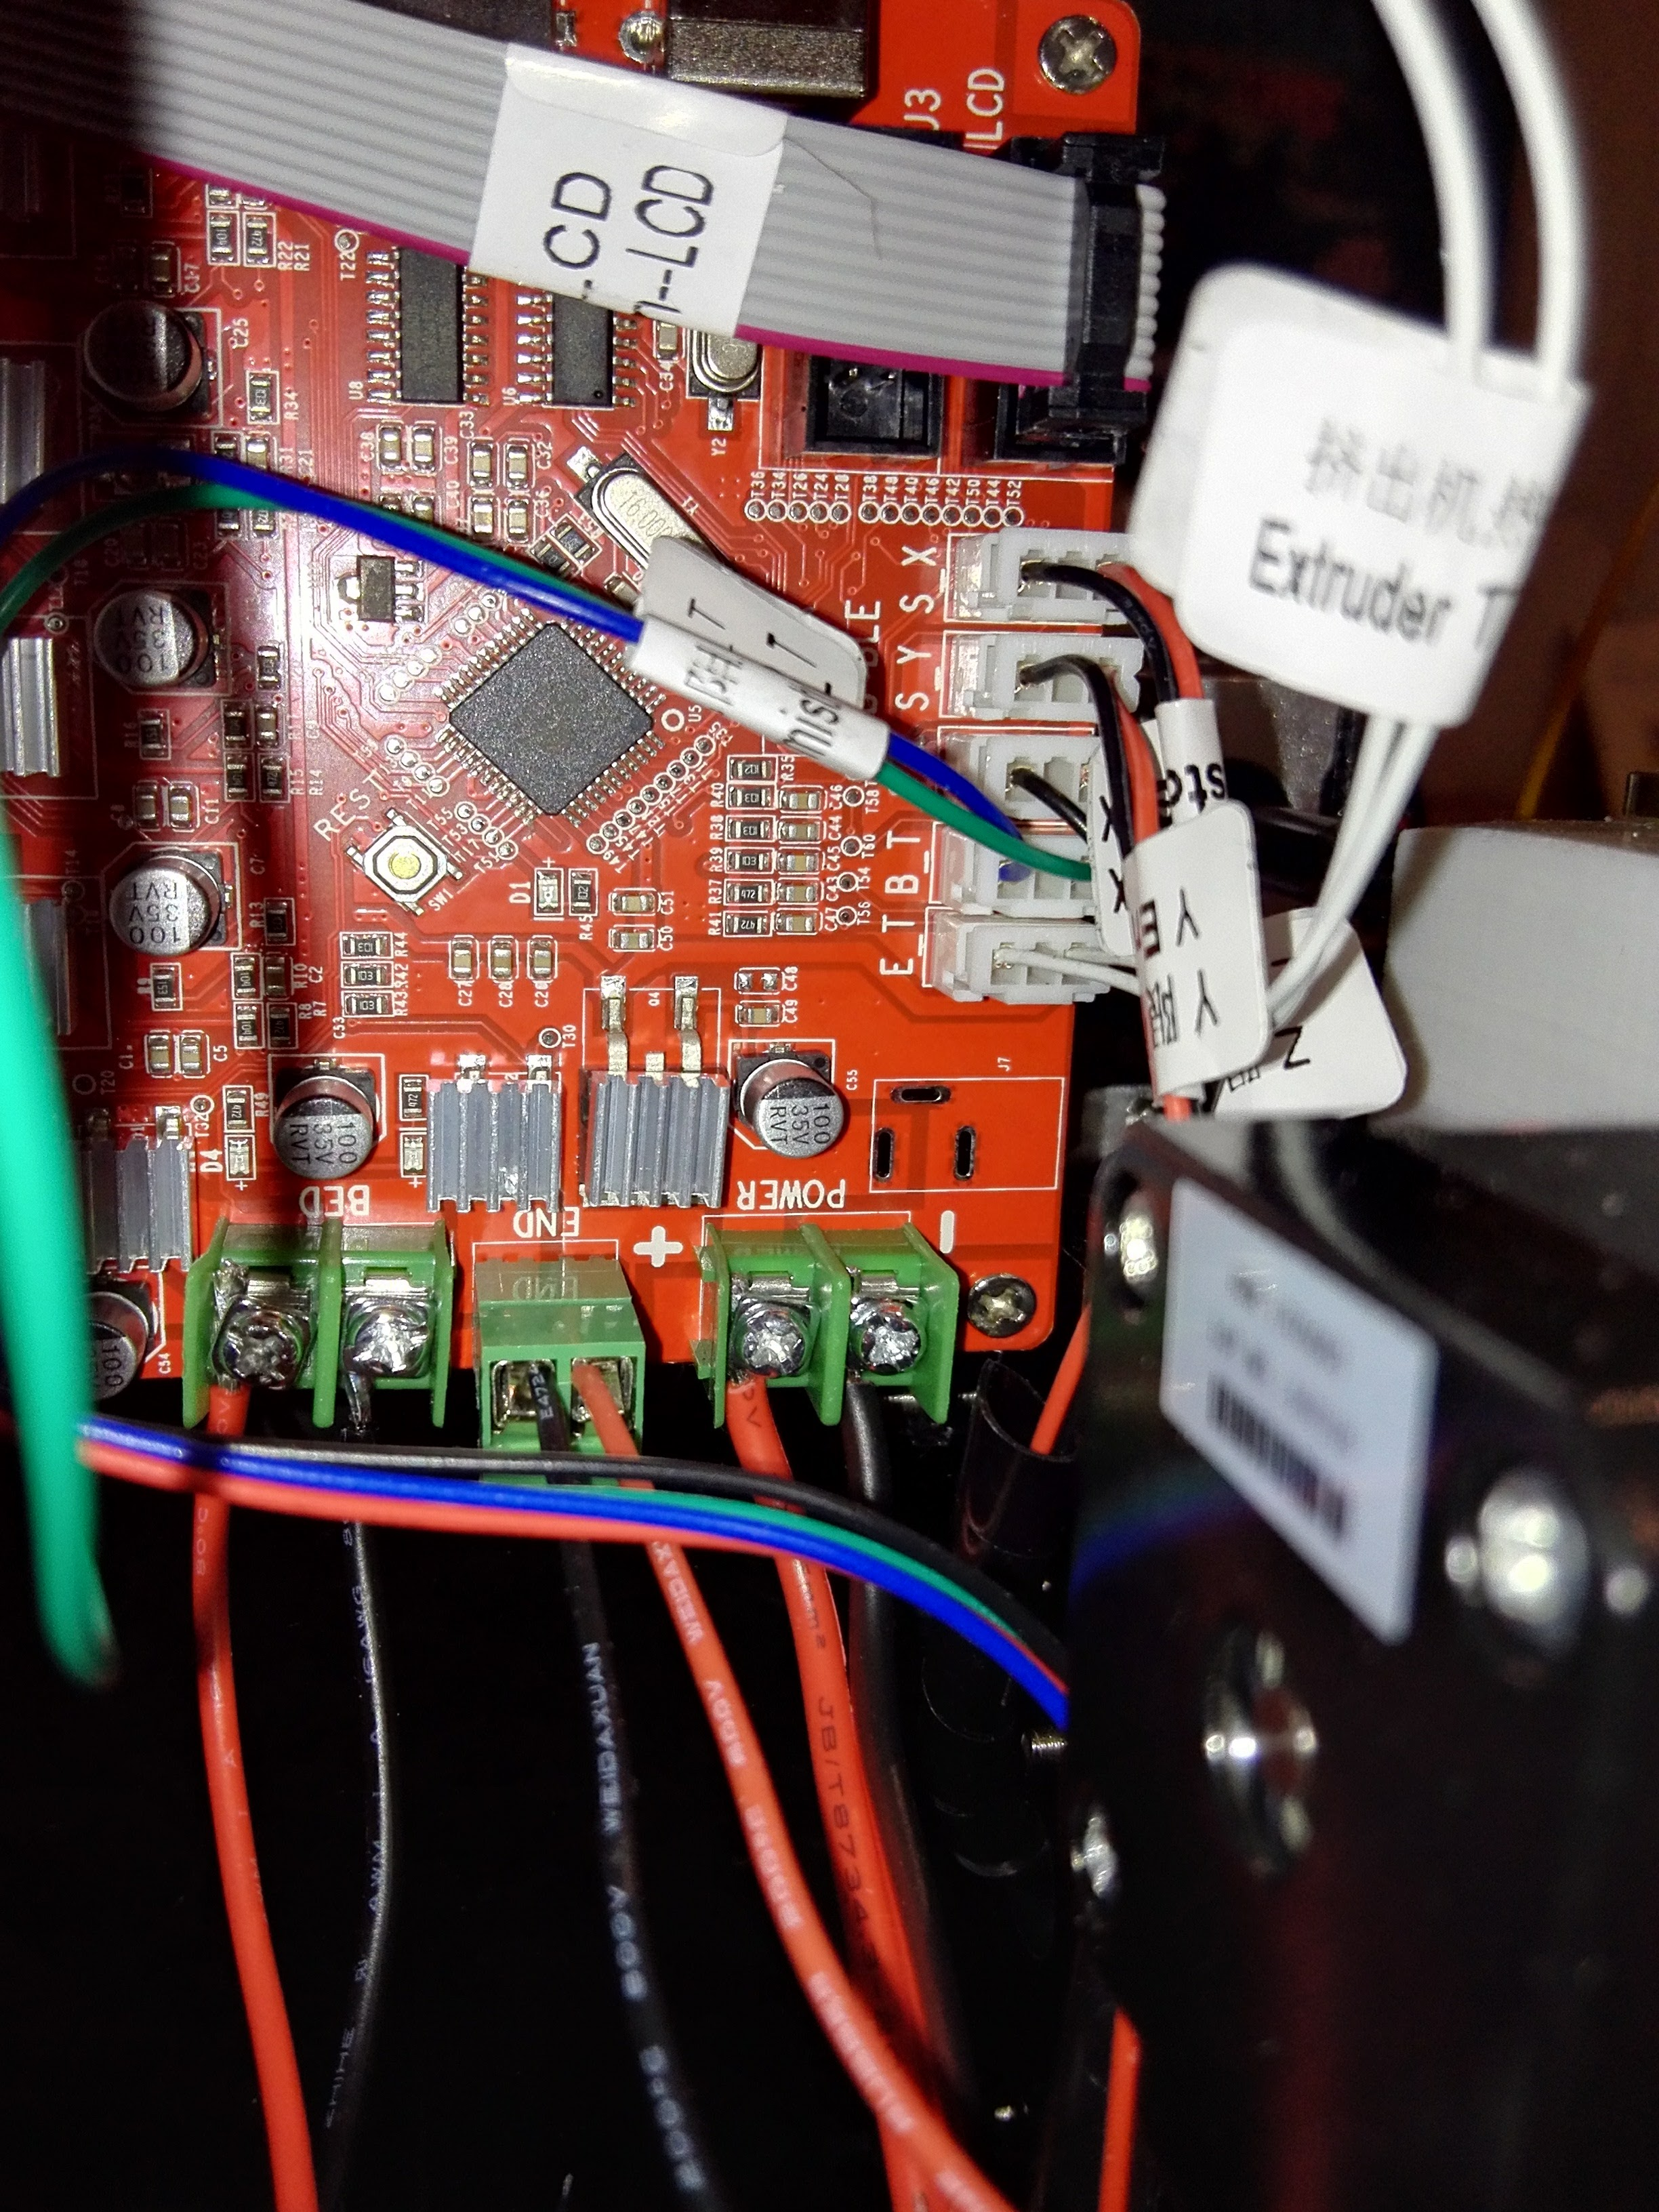 Dell Motherboard Cpu Fan Header Question further Ford Wiring Diagram Symbols Legend furthermore Usb 3 0 Connectors And Receptacles Explained furthermore Watch as well Hdmi Port Pinout. on motherboard wiring diagram